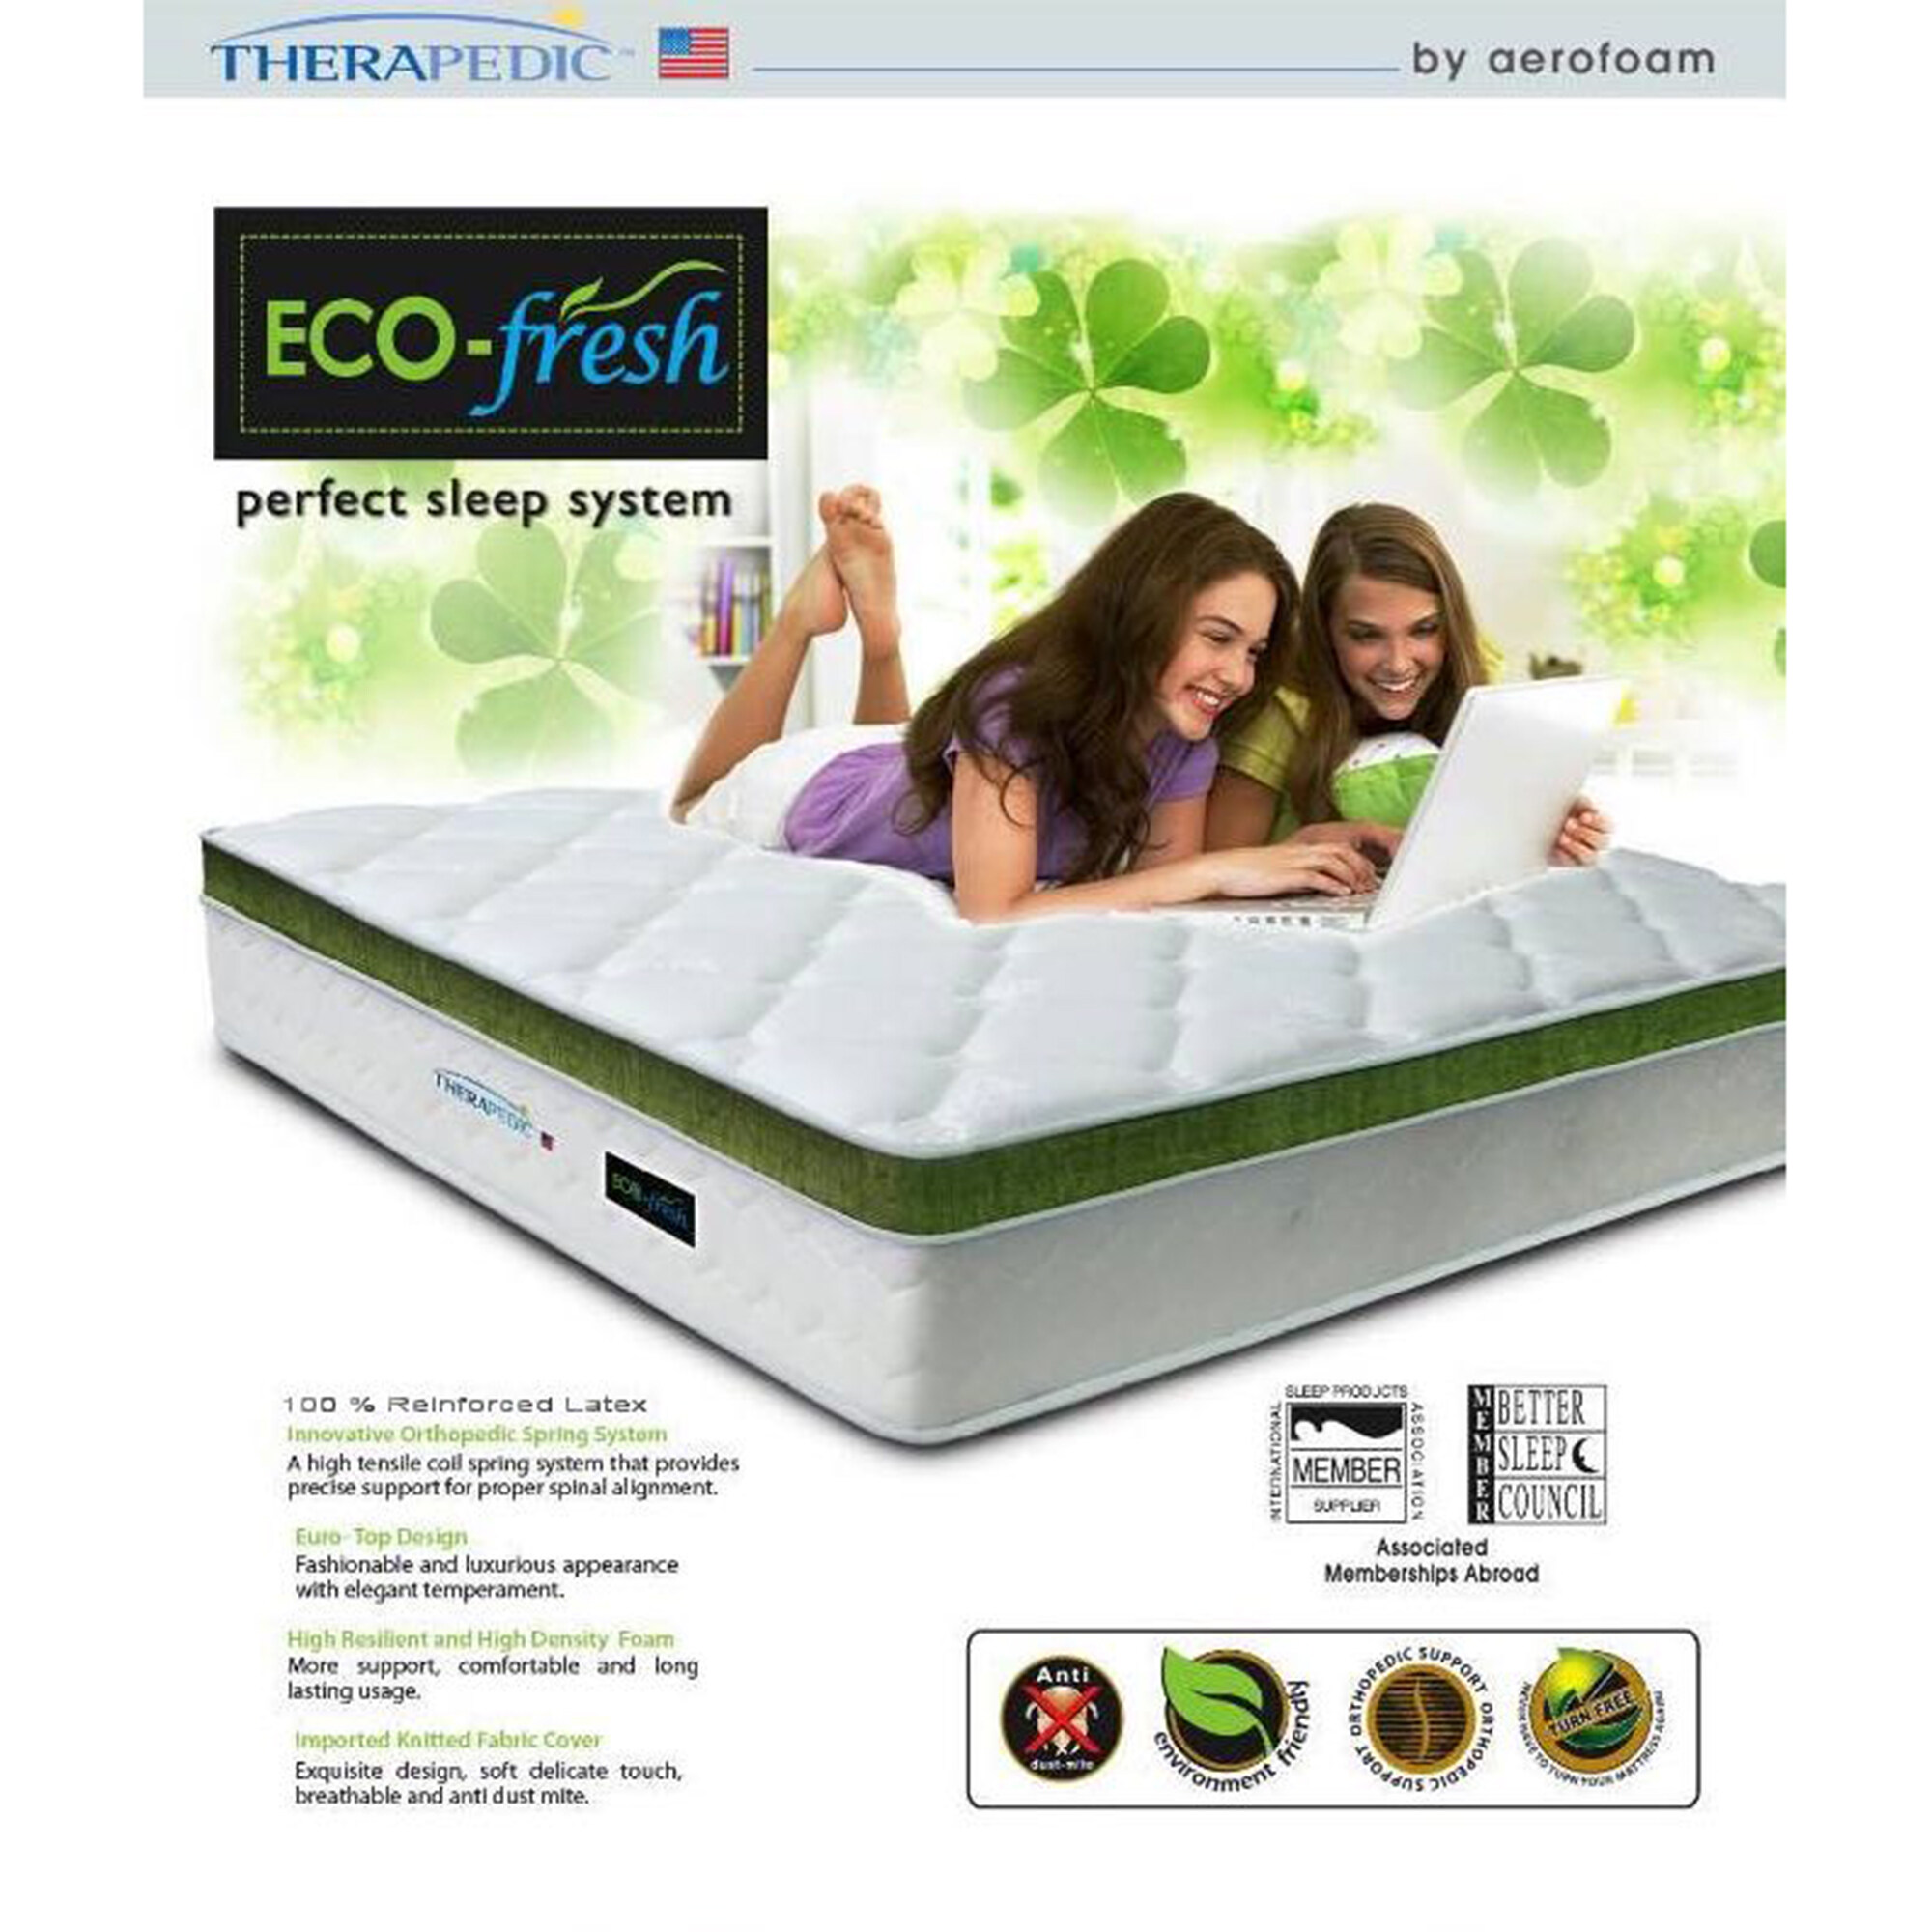 Therapedic Eco Fresh 12 Inch Spring & Latex Chiropractic High Quality Mattress (10 Years Warranty)-White